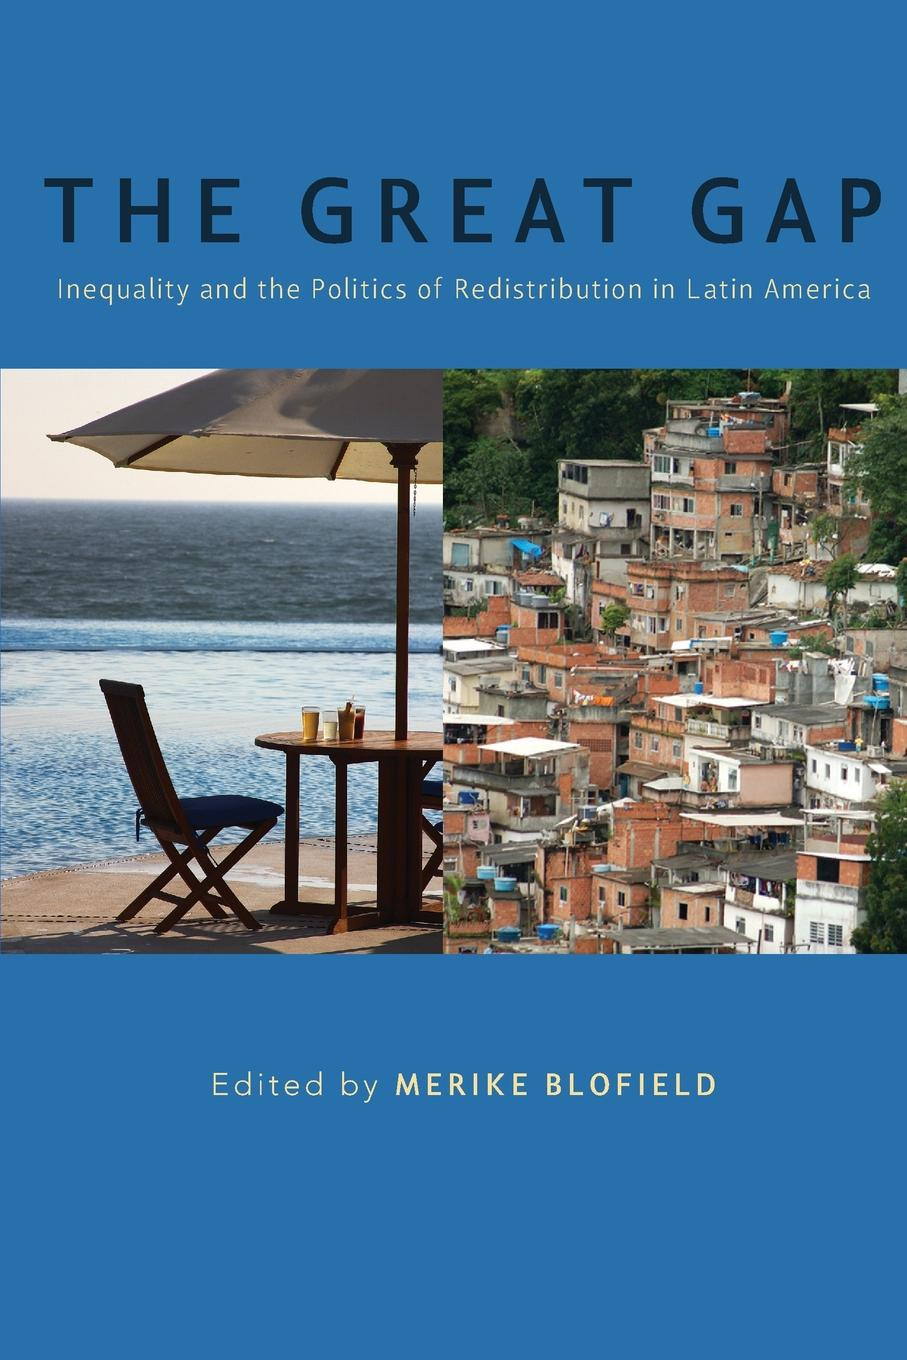 The Great Gap. Inequality and the Politics of Redistribution in Latin America goran therborn the killing fields of inequality